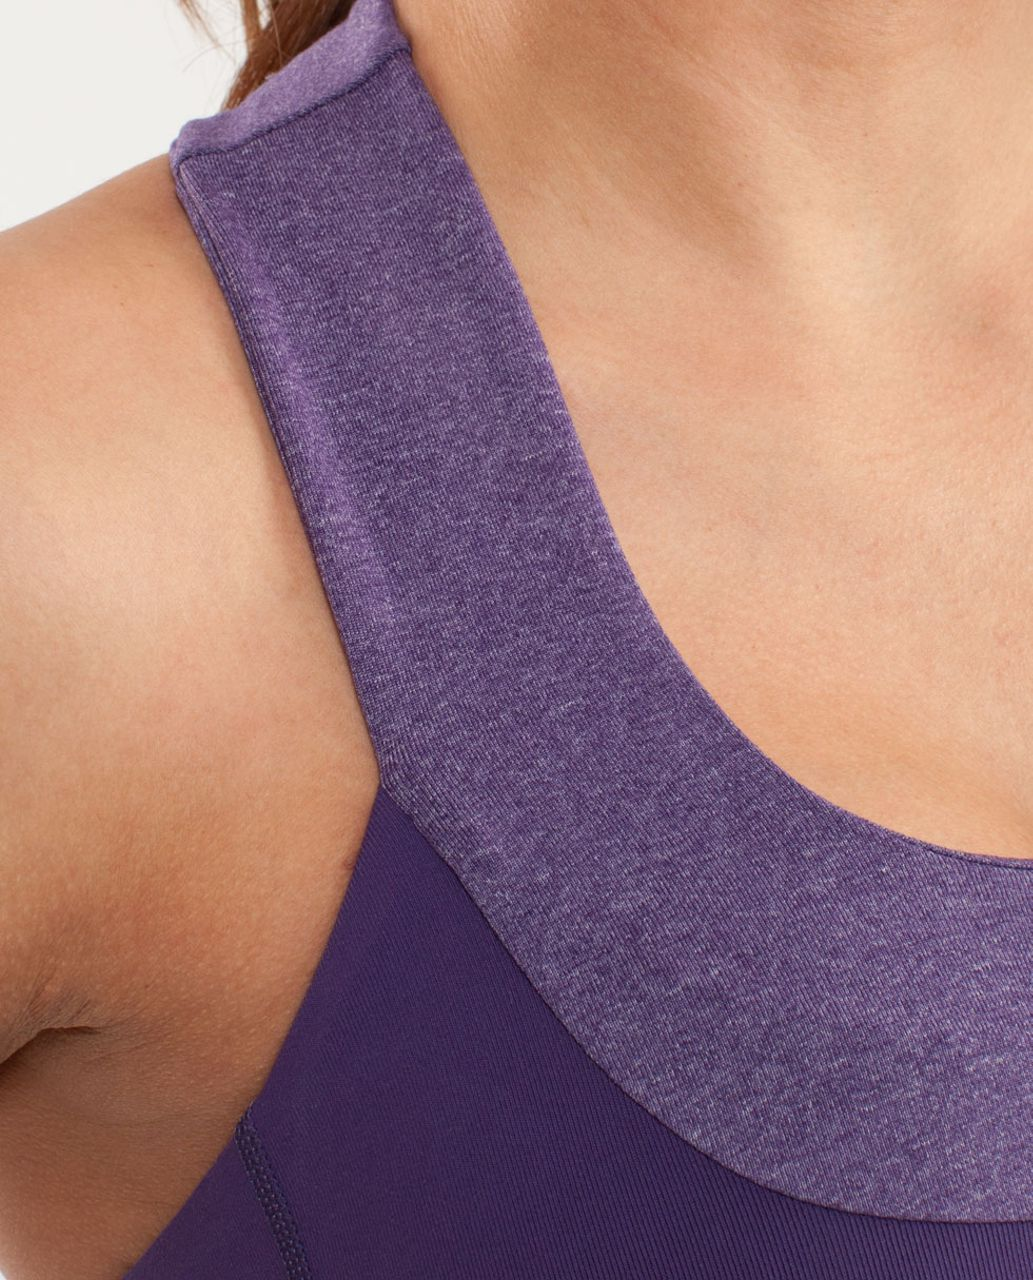 Lululemon Scoop Neck Tank - Concord Grape /  Heathered Concord Grape